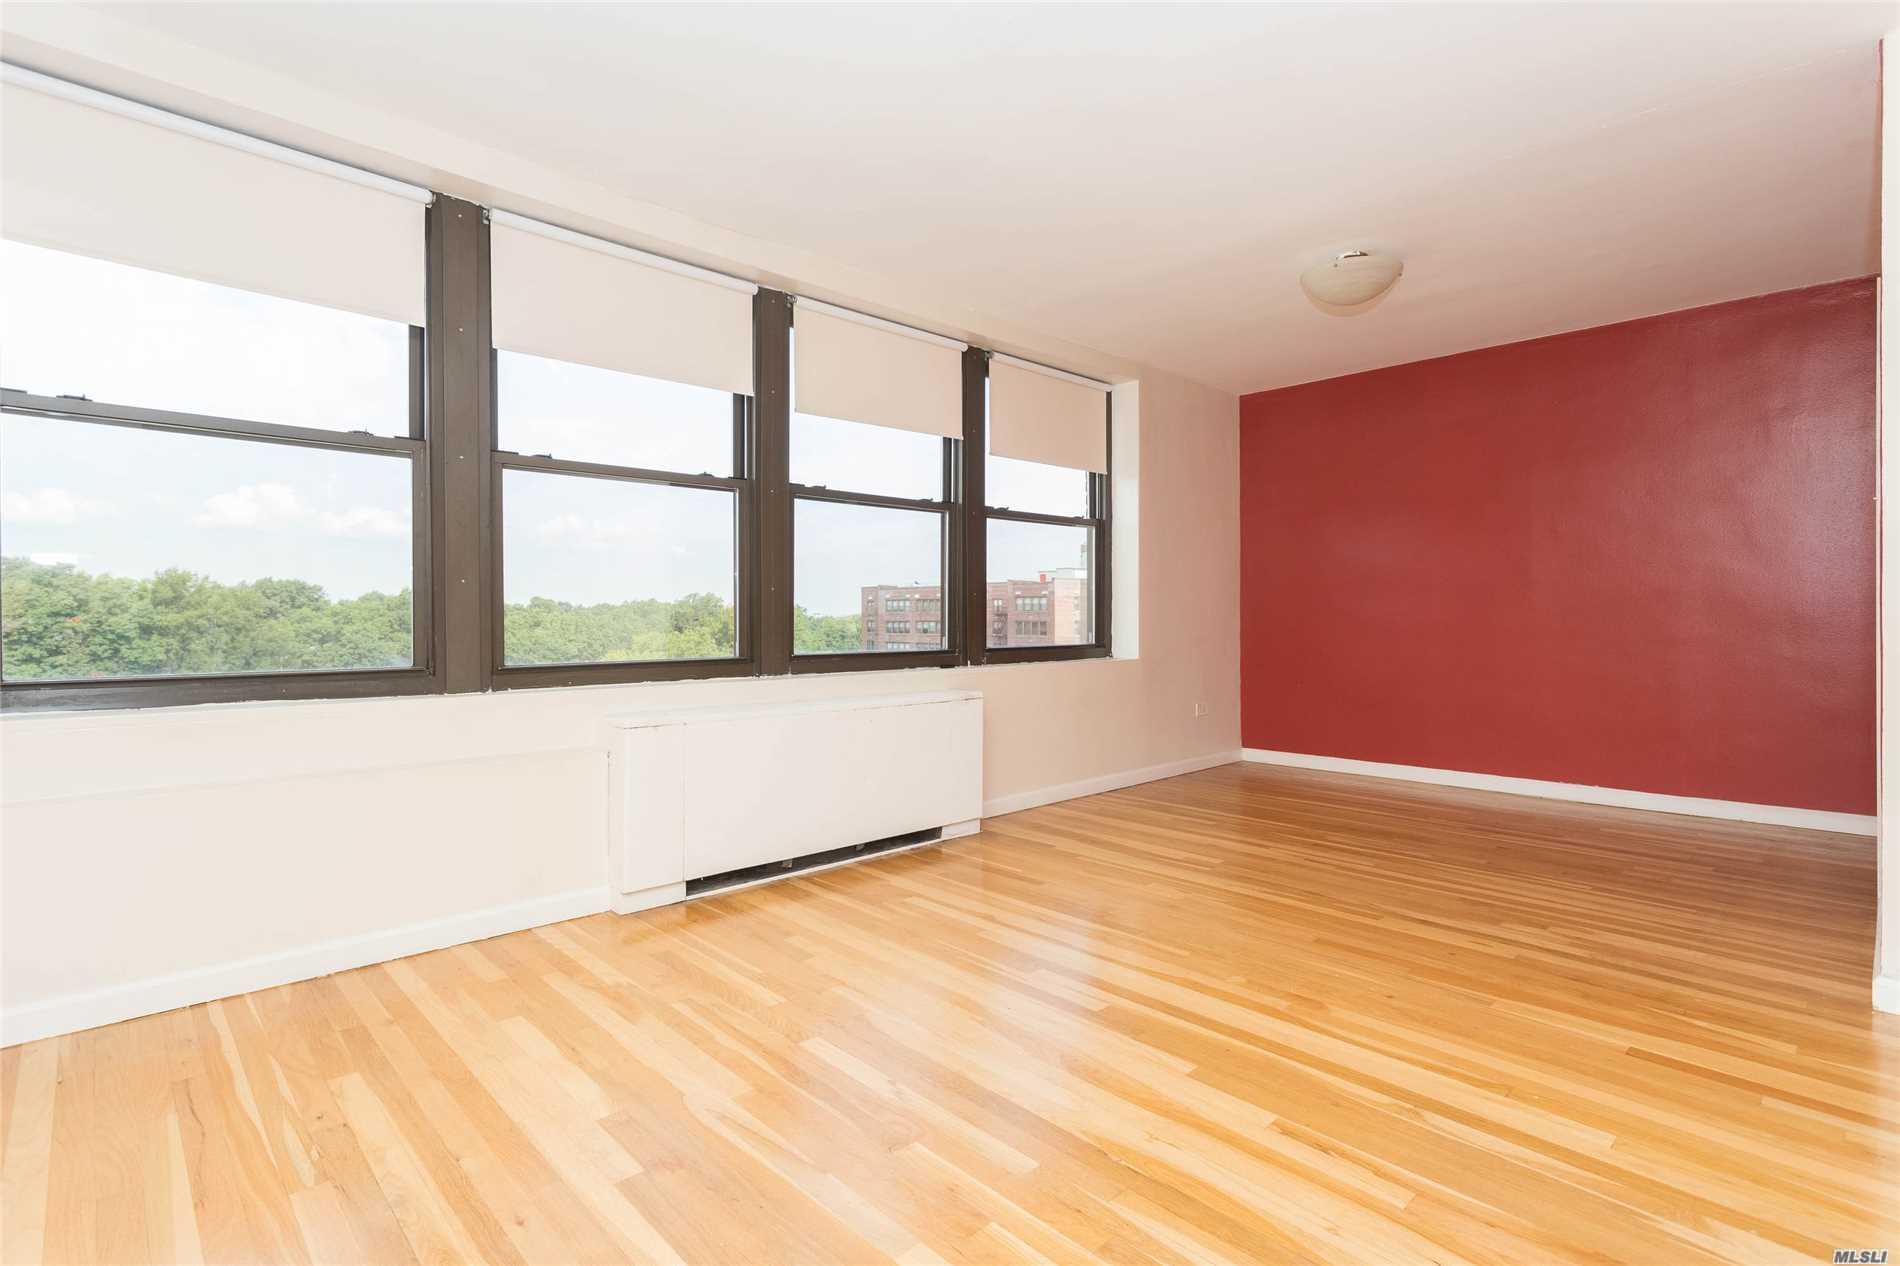 Sunfilled And Oversized 950 Sq. Ft. 1 Bedroom With Separate Dining Area Which Can Be Used As A Small Second Bedroom/Den. Updated Eat In Kitchen And Bathroom, Central Air/ Heat, Plus Indoor Garage Ownership. Walk To Bay Terrace Shops, Express Bus To City Right Outside Your Door. Great Location. Don't Pass This By!